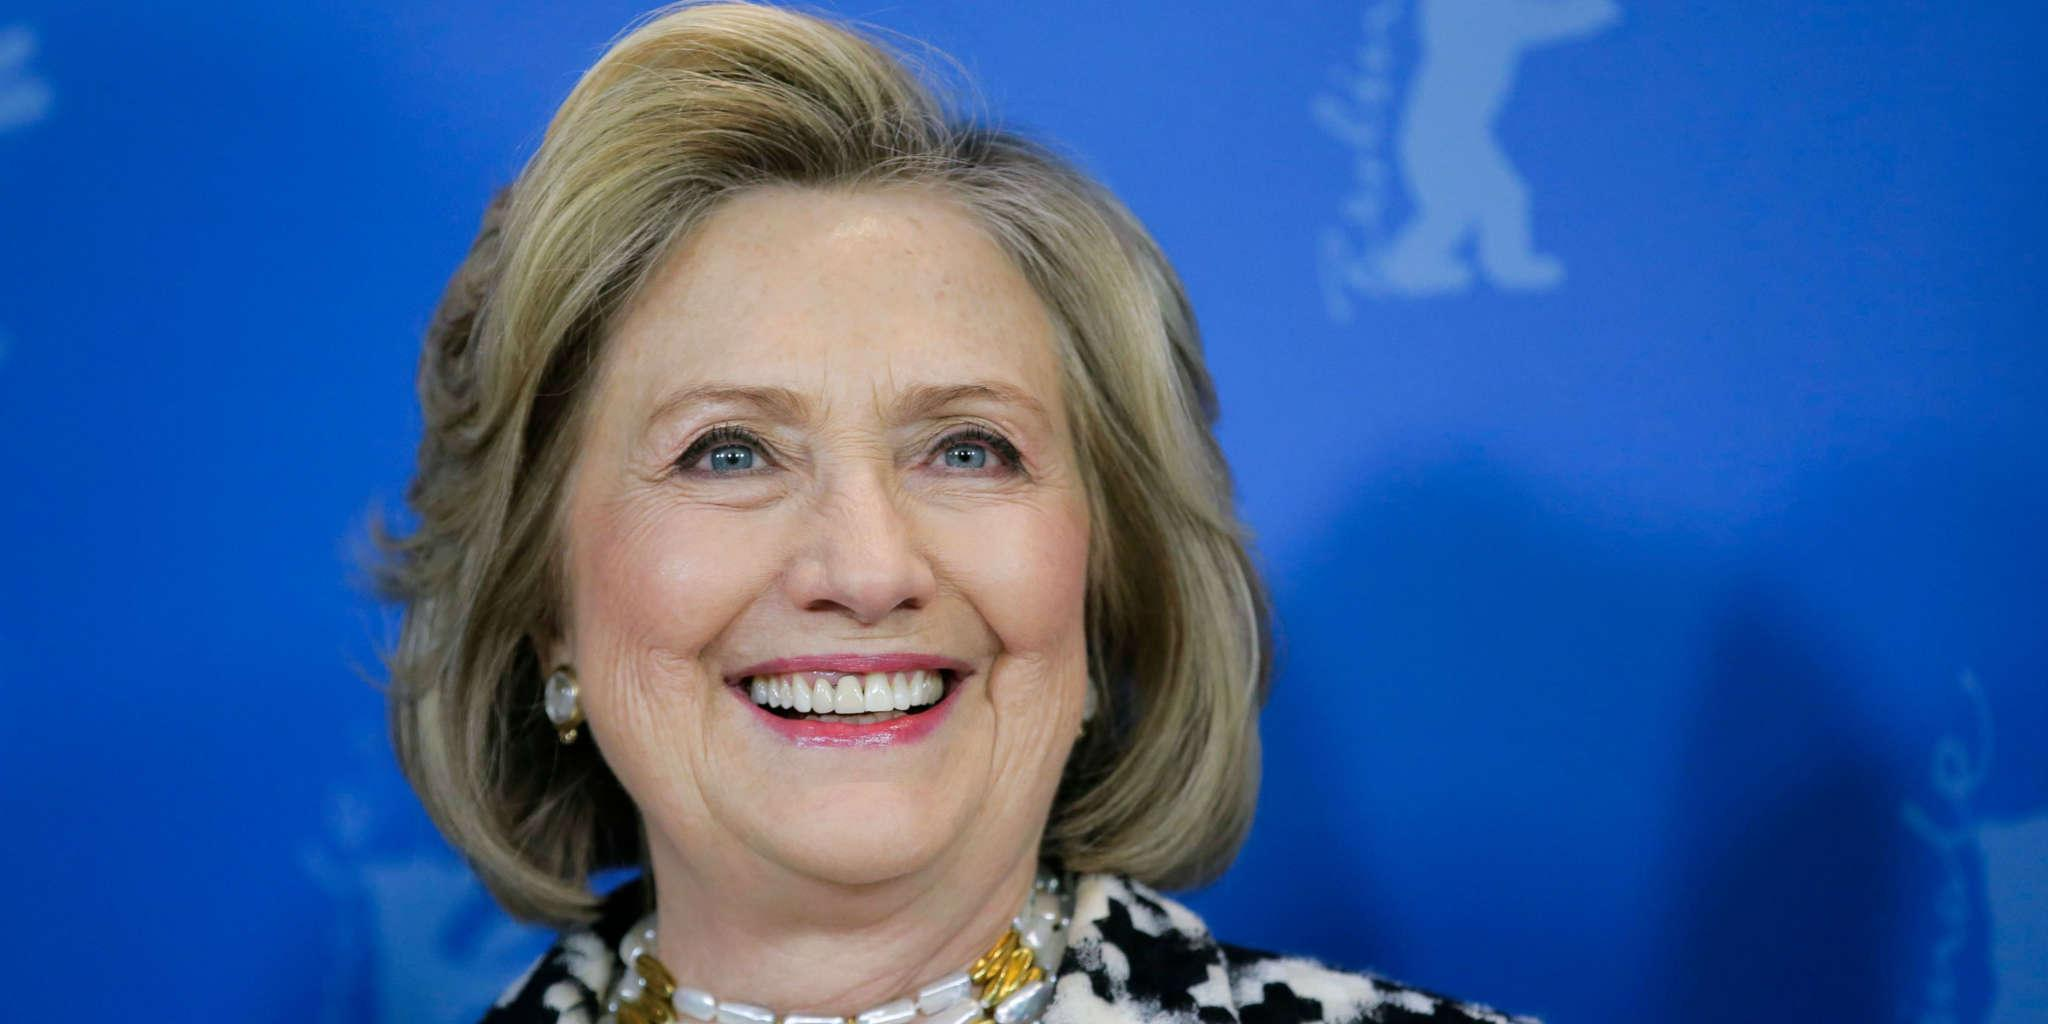 Hillary Clinton Comes Up With Great 'Real Housewives' Tagline On WWHL And Social Media Can't Get Over This 'Loose' Side Of Her